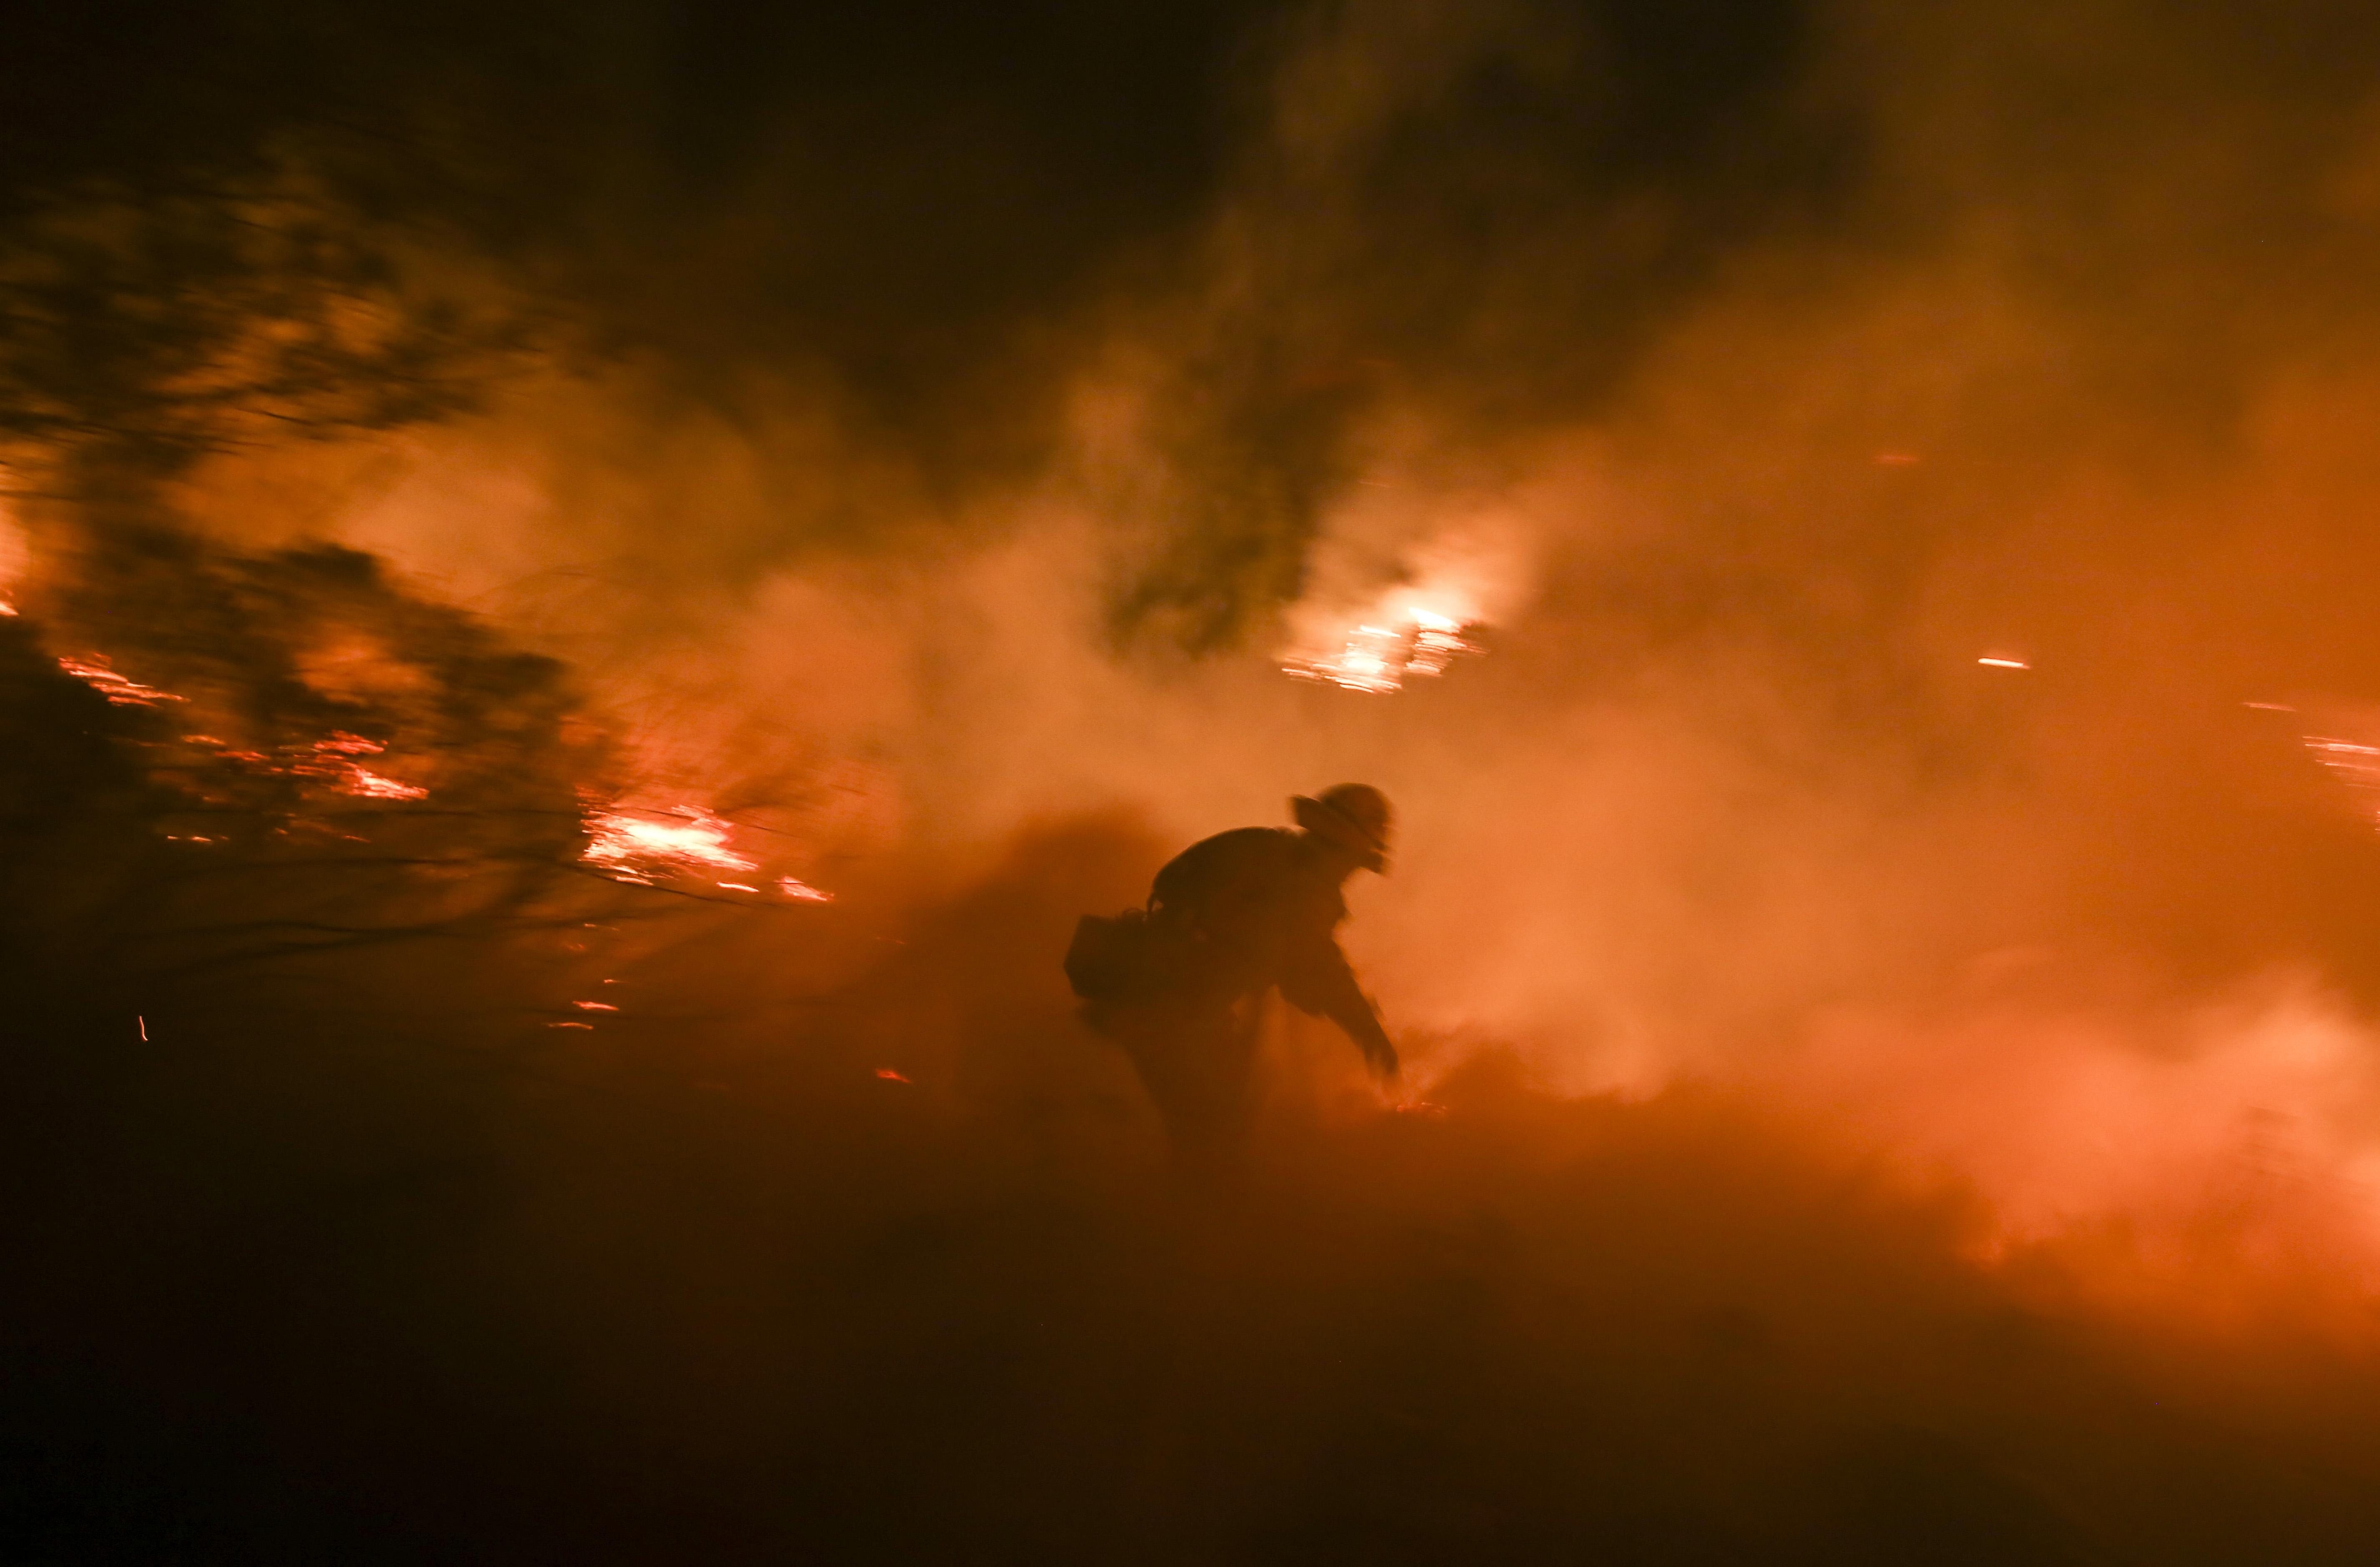 Sylmar Creek Fire Update >> Creek Fire Update: Sylmar, Kagel Canyon Wildfire Continues To Grow